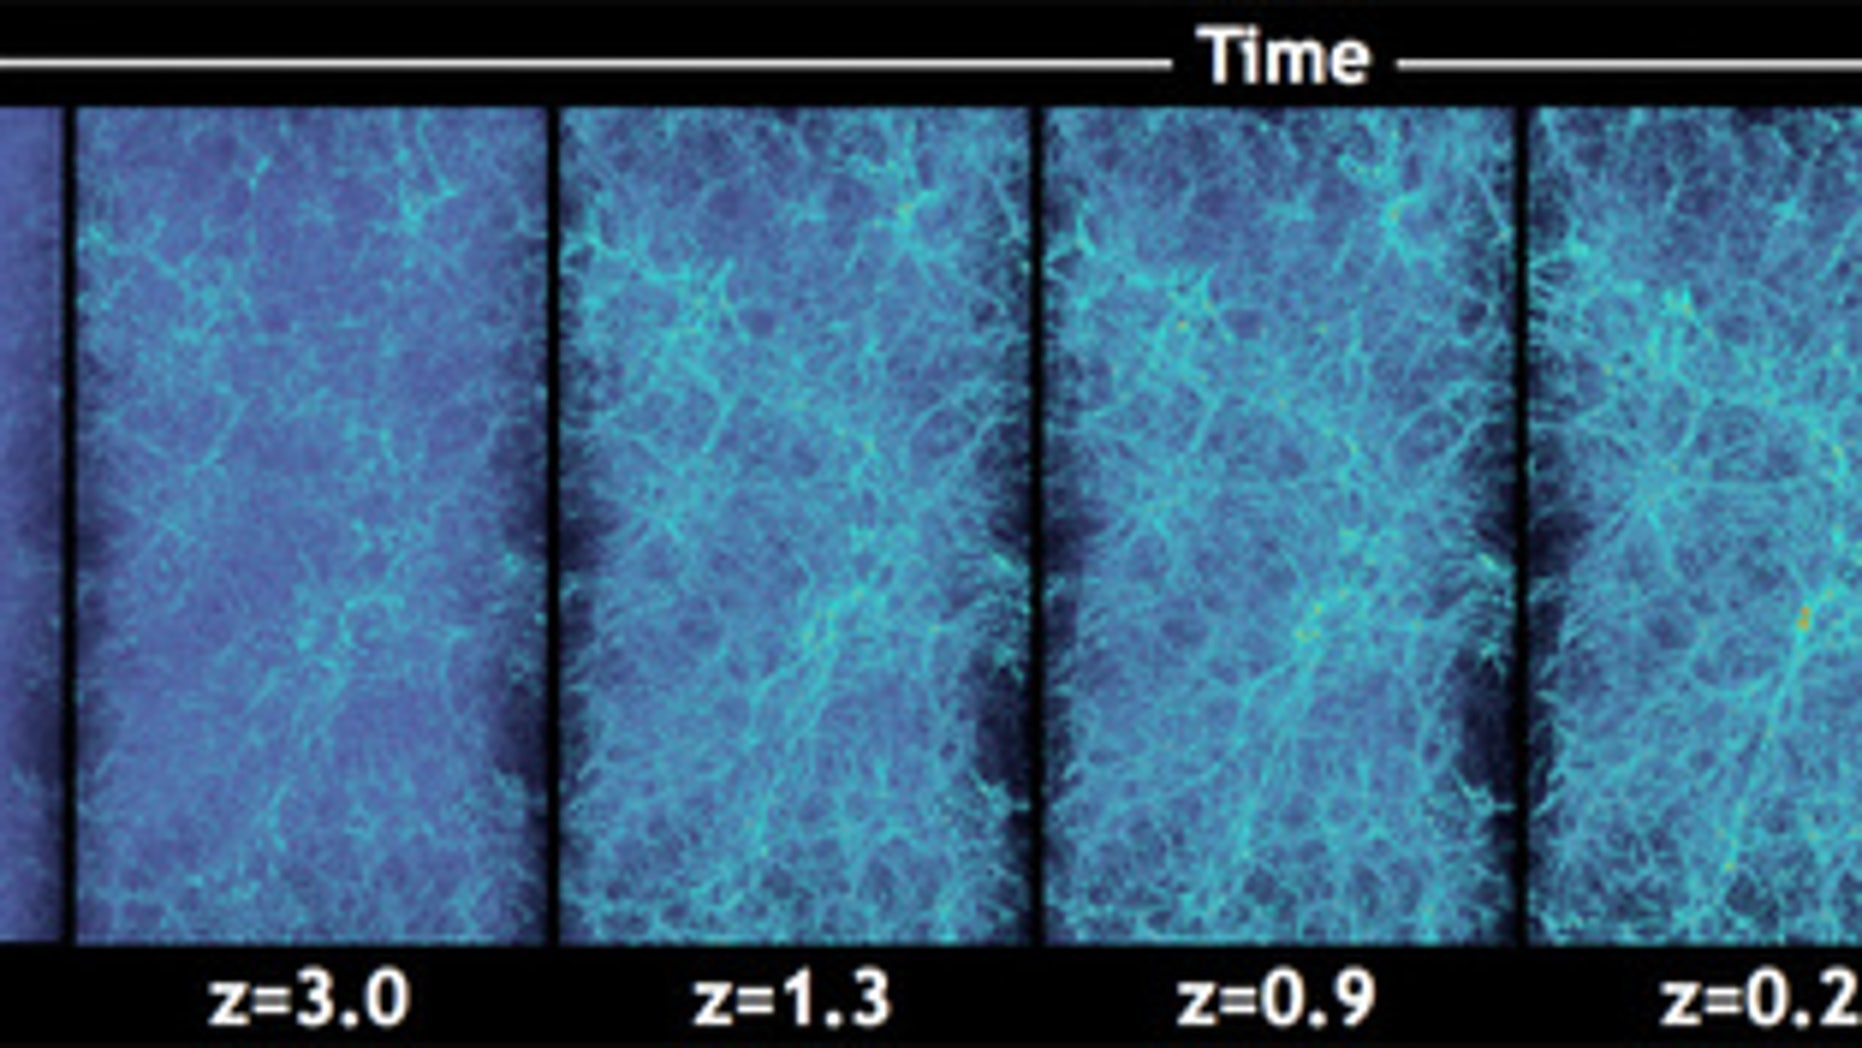 Large-scale structures in the universe form over time in these stills from a supercomputer simulation of the evolution of the universe.